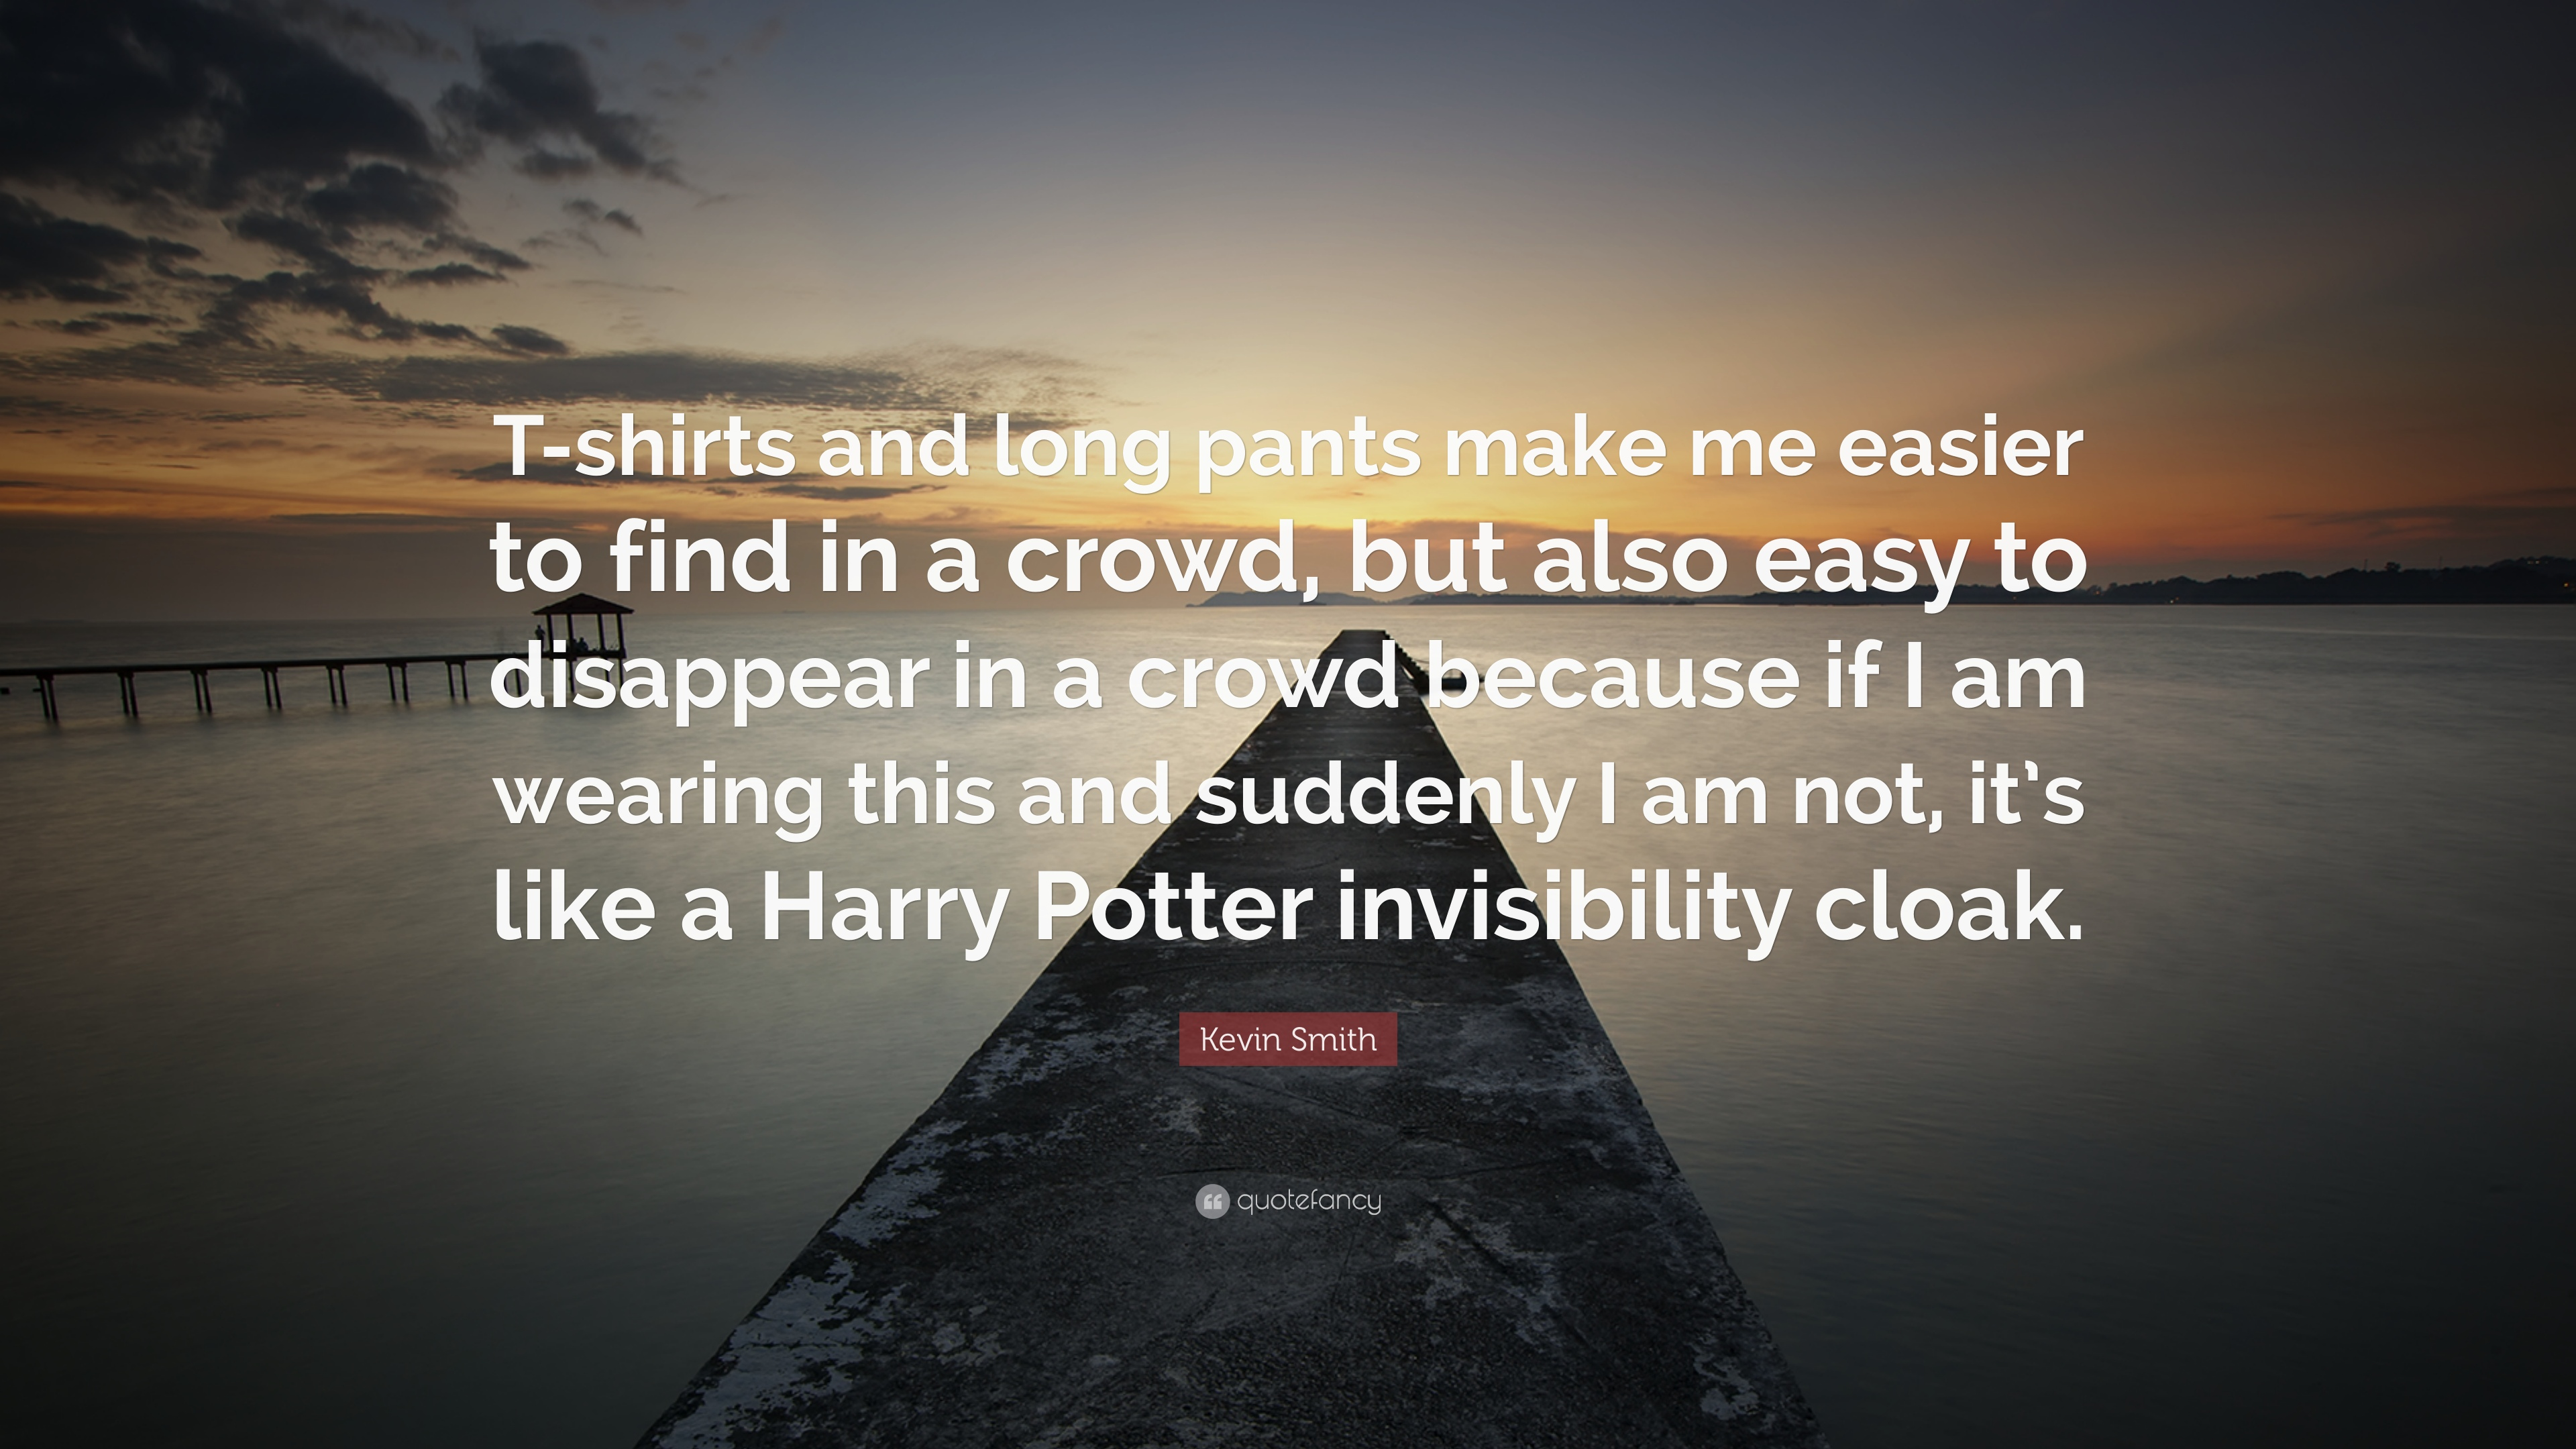 Fantastic Wallpaper Harry Potter Triangle - 1099151-Kevin-Smith-Quote-T-shirts-and-long-pants-make-me-easier-to-find  Collection_351354.jpg